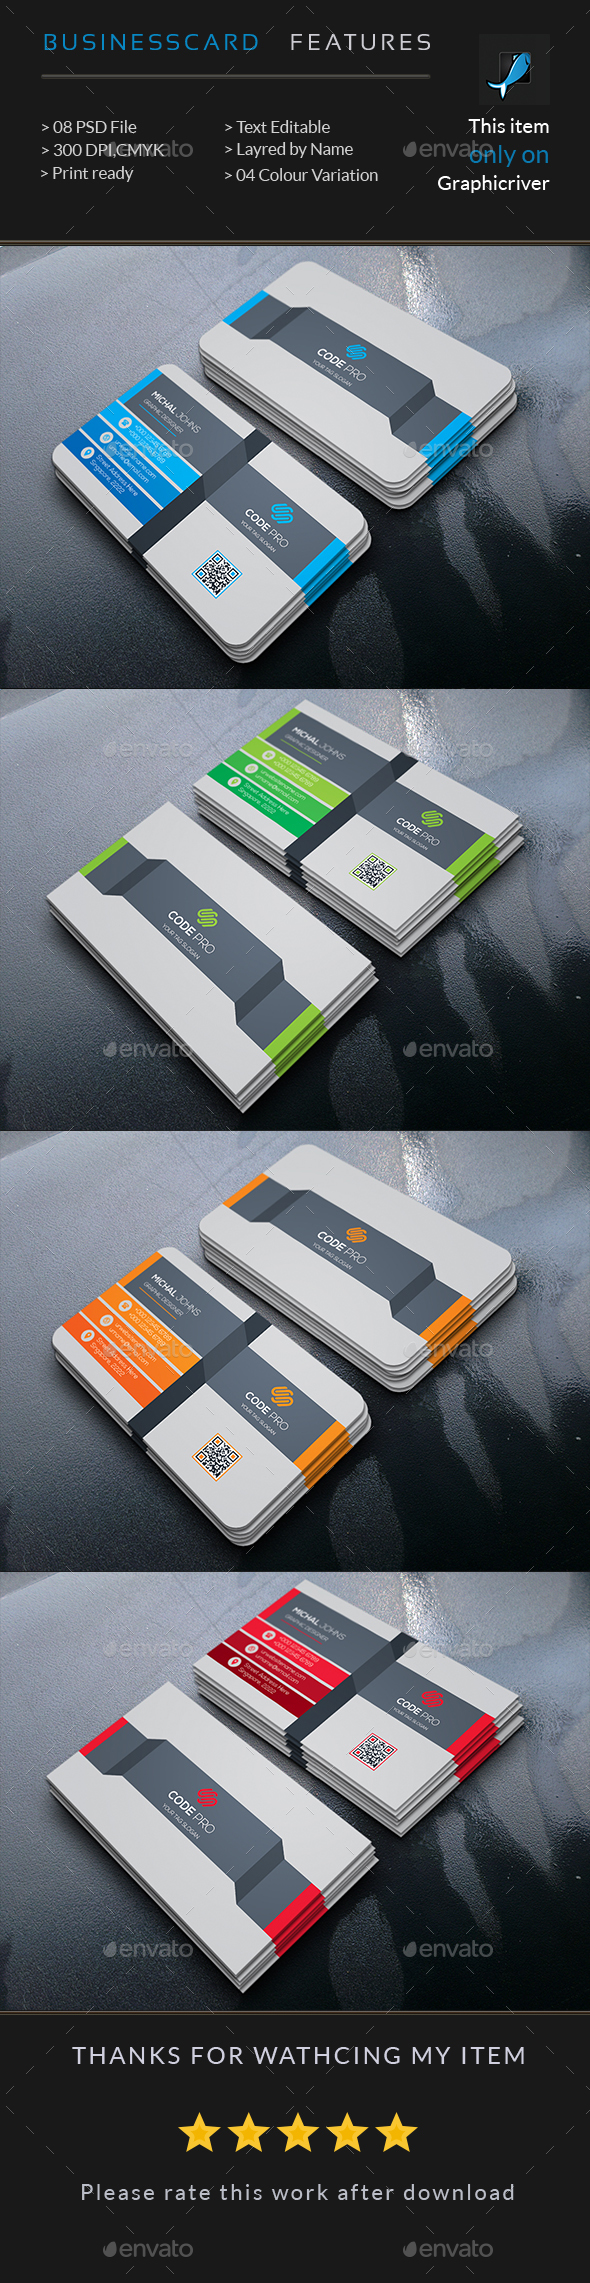 Creative business card design template business cards template psd creative business card design template business cards template psd download here https flashek Image collections